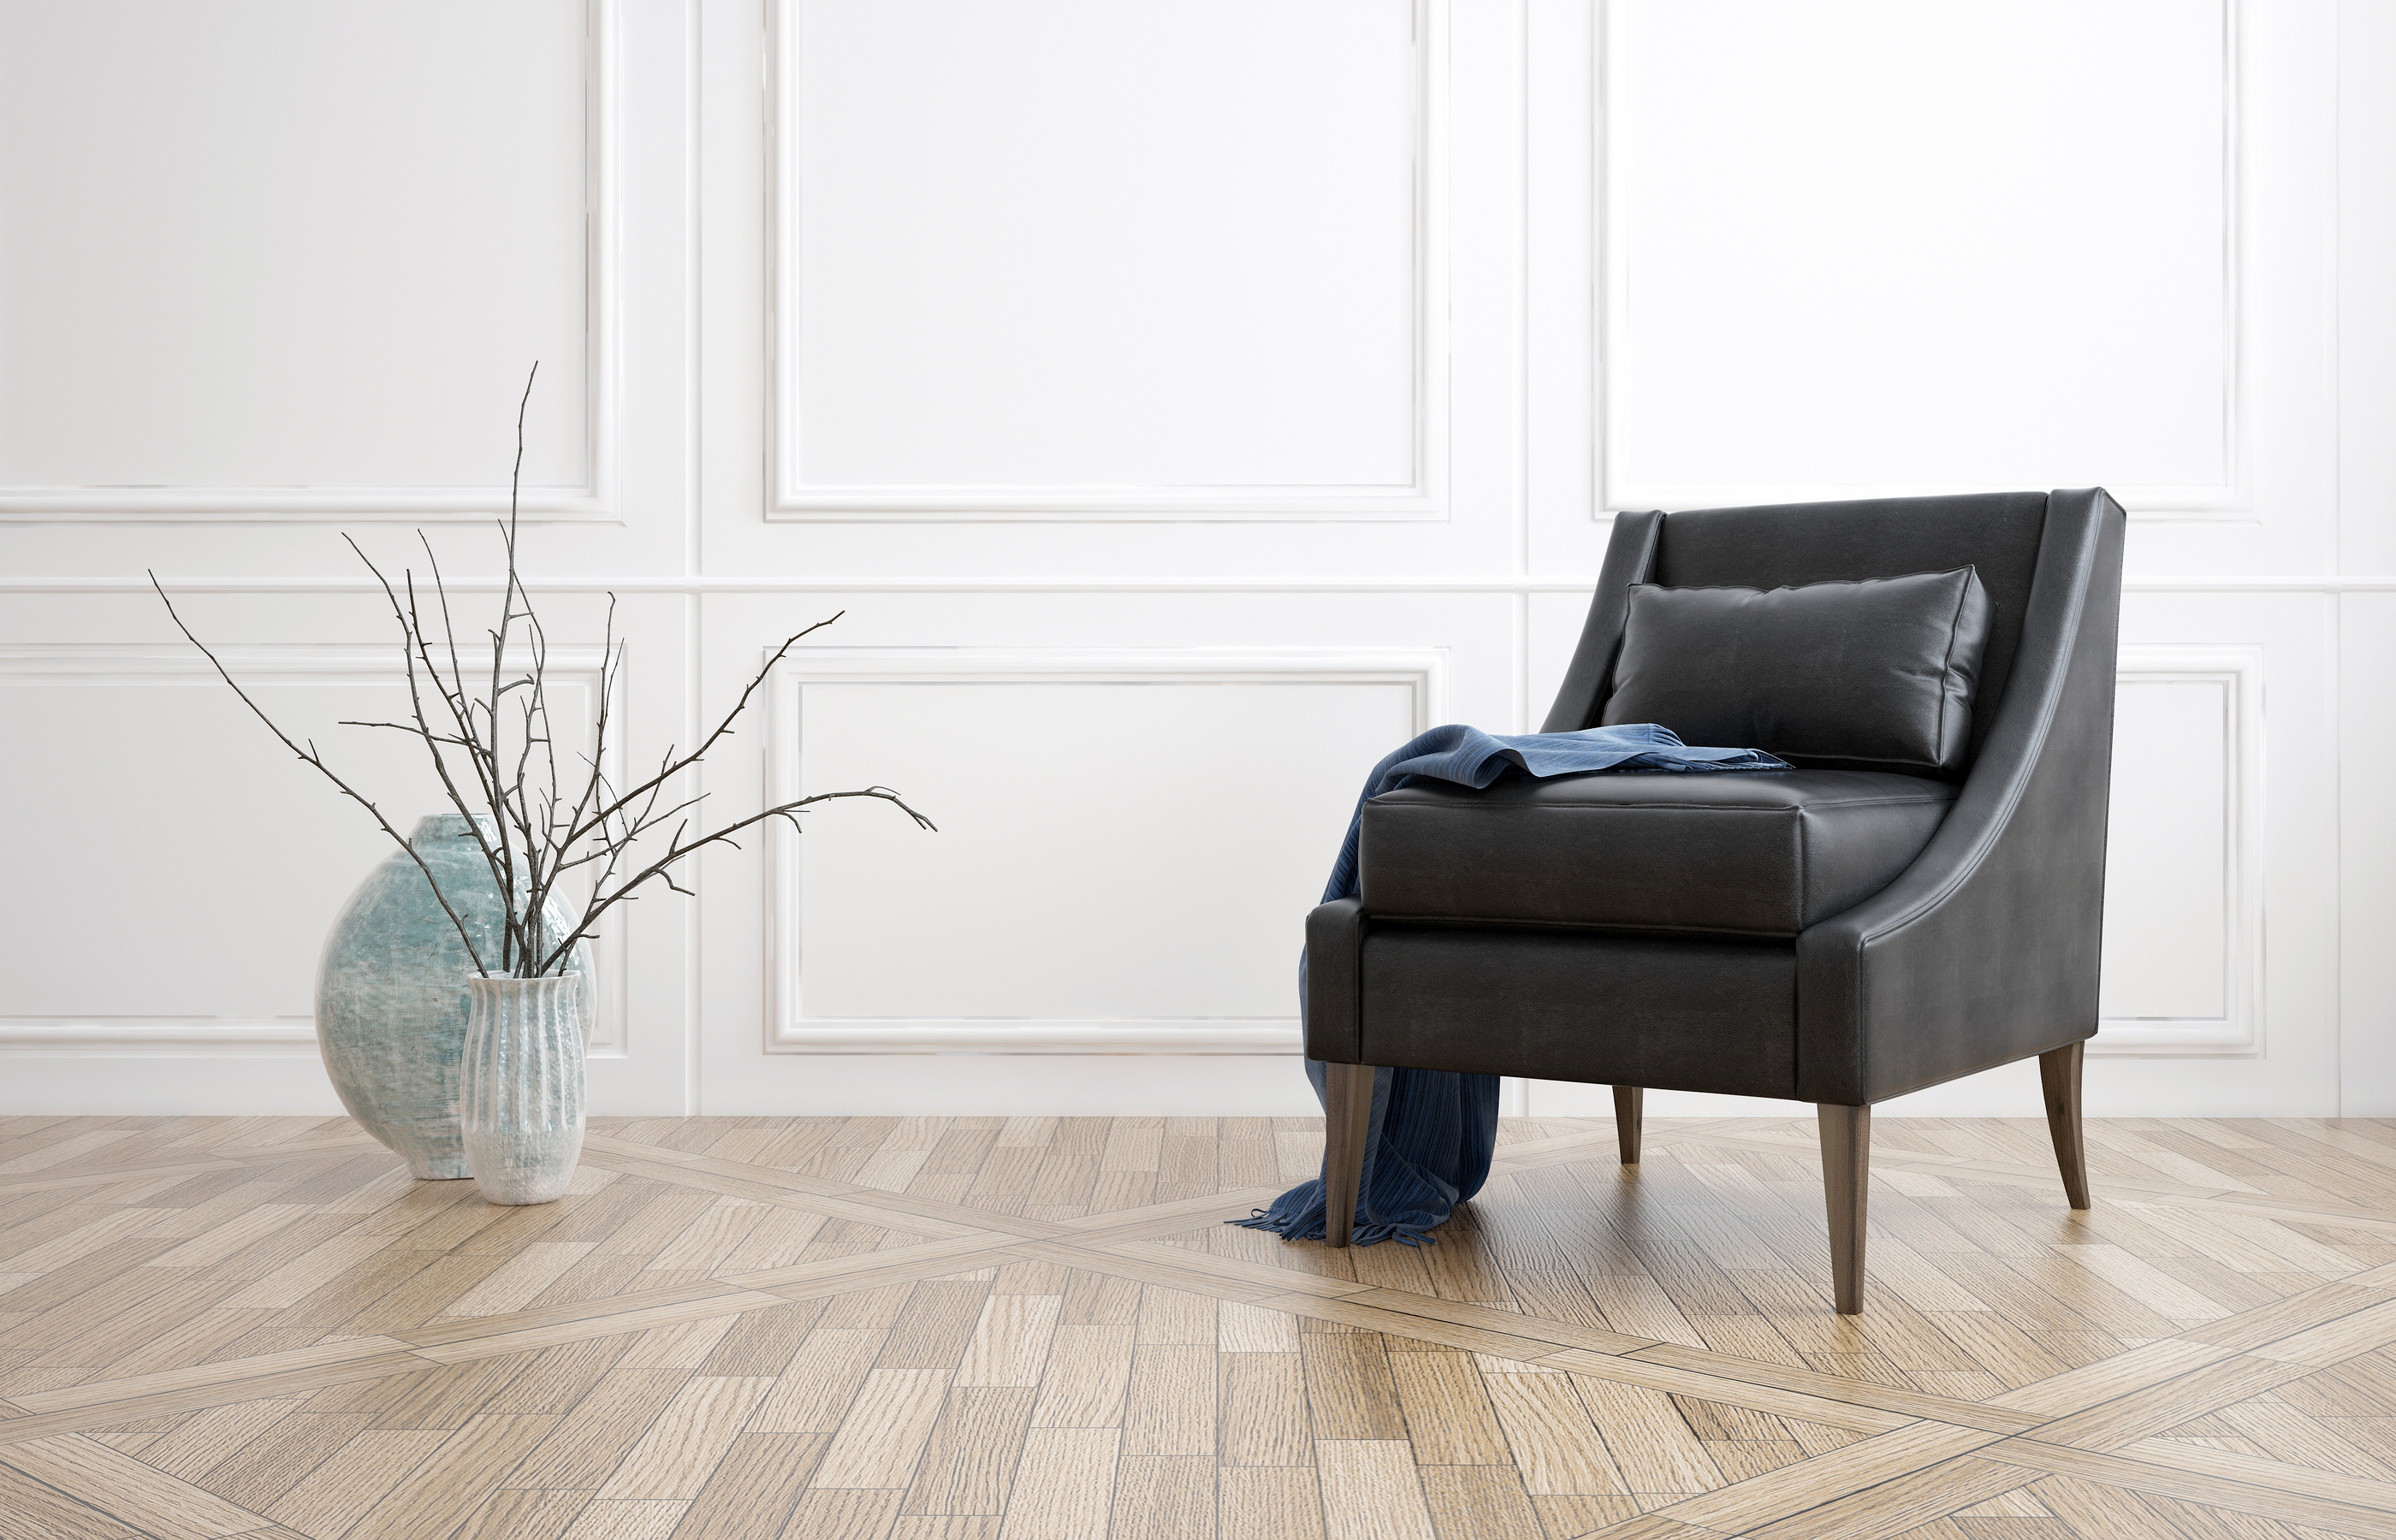 Comfortable black leather armchair in a minimalist living room interior with white panelled walls, h